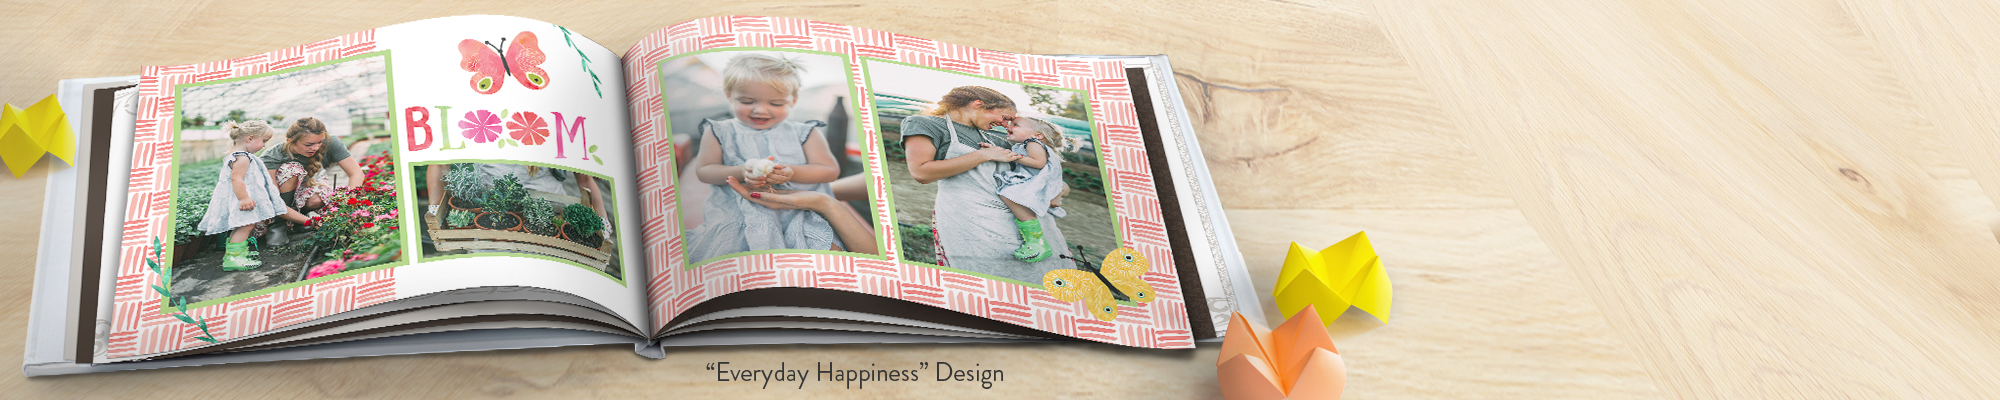 Photo Books : Bring home a best seller! Capture all your warm days and sunny smiles in our 8x11 Hardcover Photo Book.